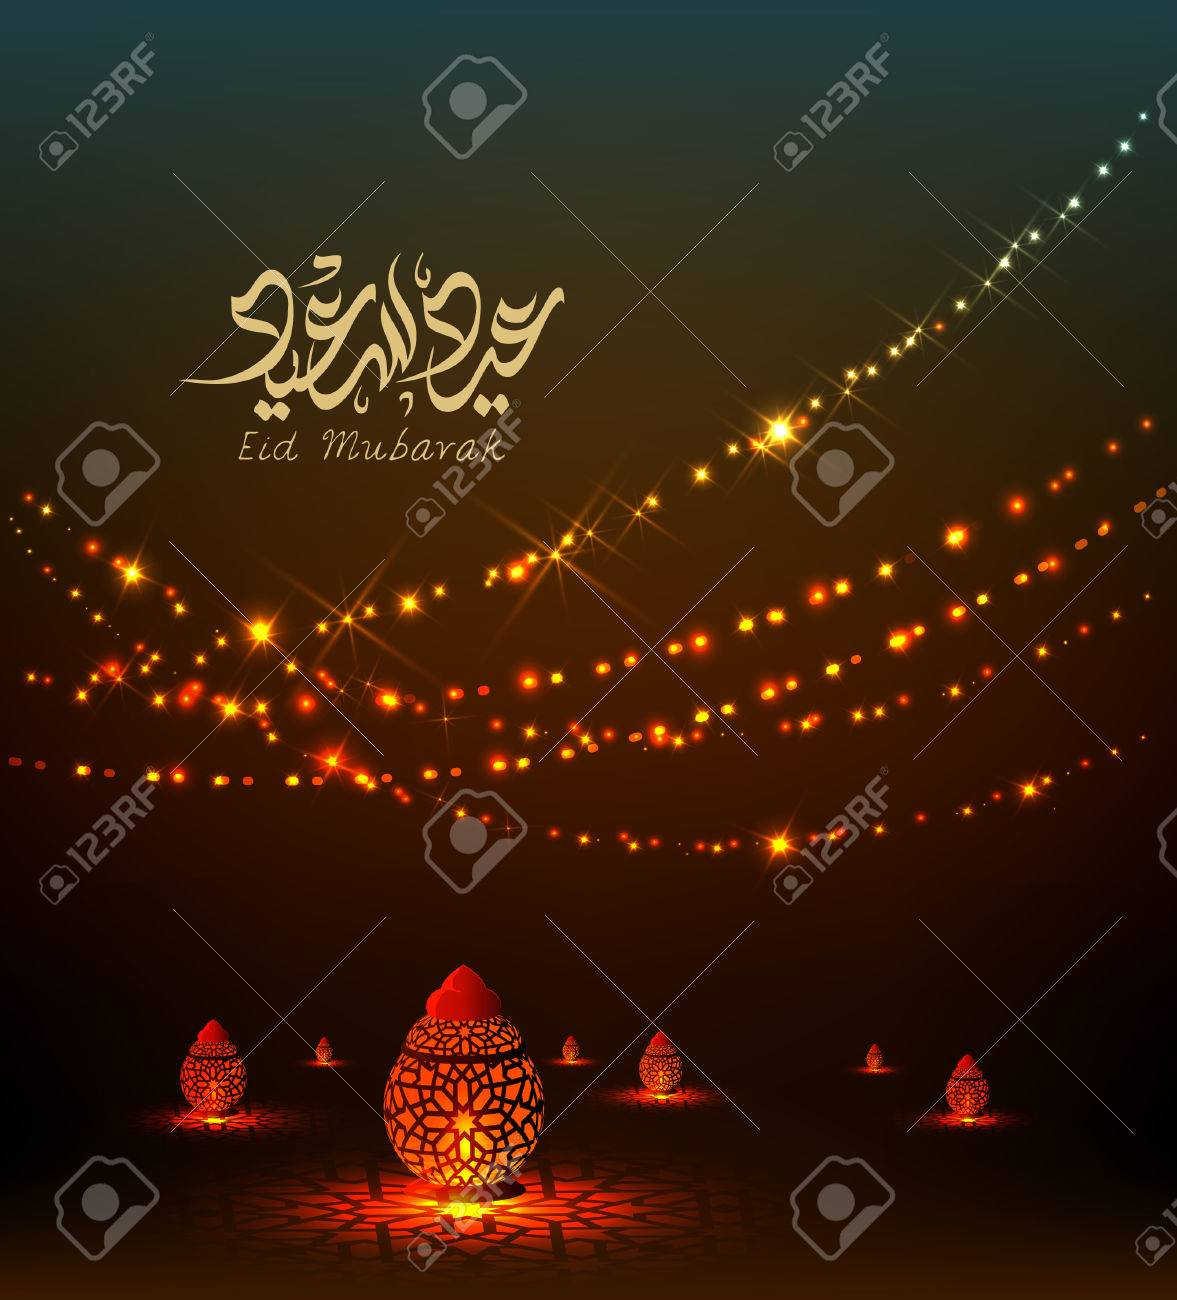 Eid mubarak greeting card islamic background for muslims 65676327 eid mubarak greeting card islamic background for muslims holidays such as eid al fitr eid al adha ag m4hsunfo